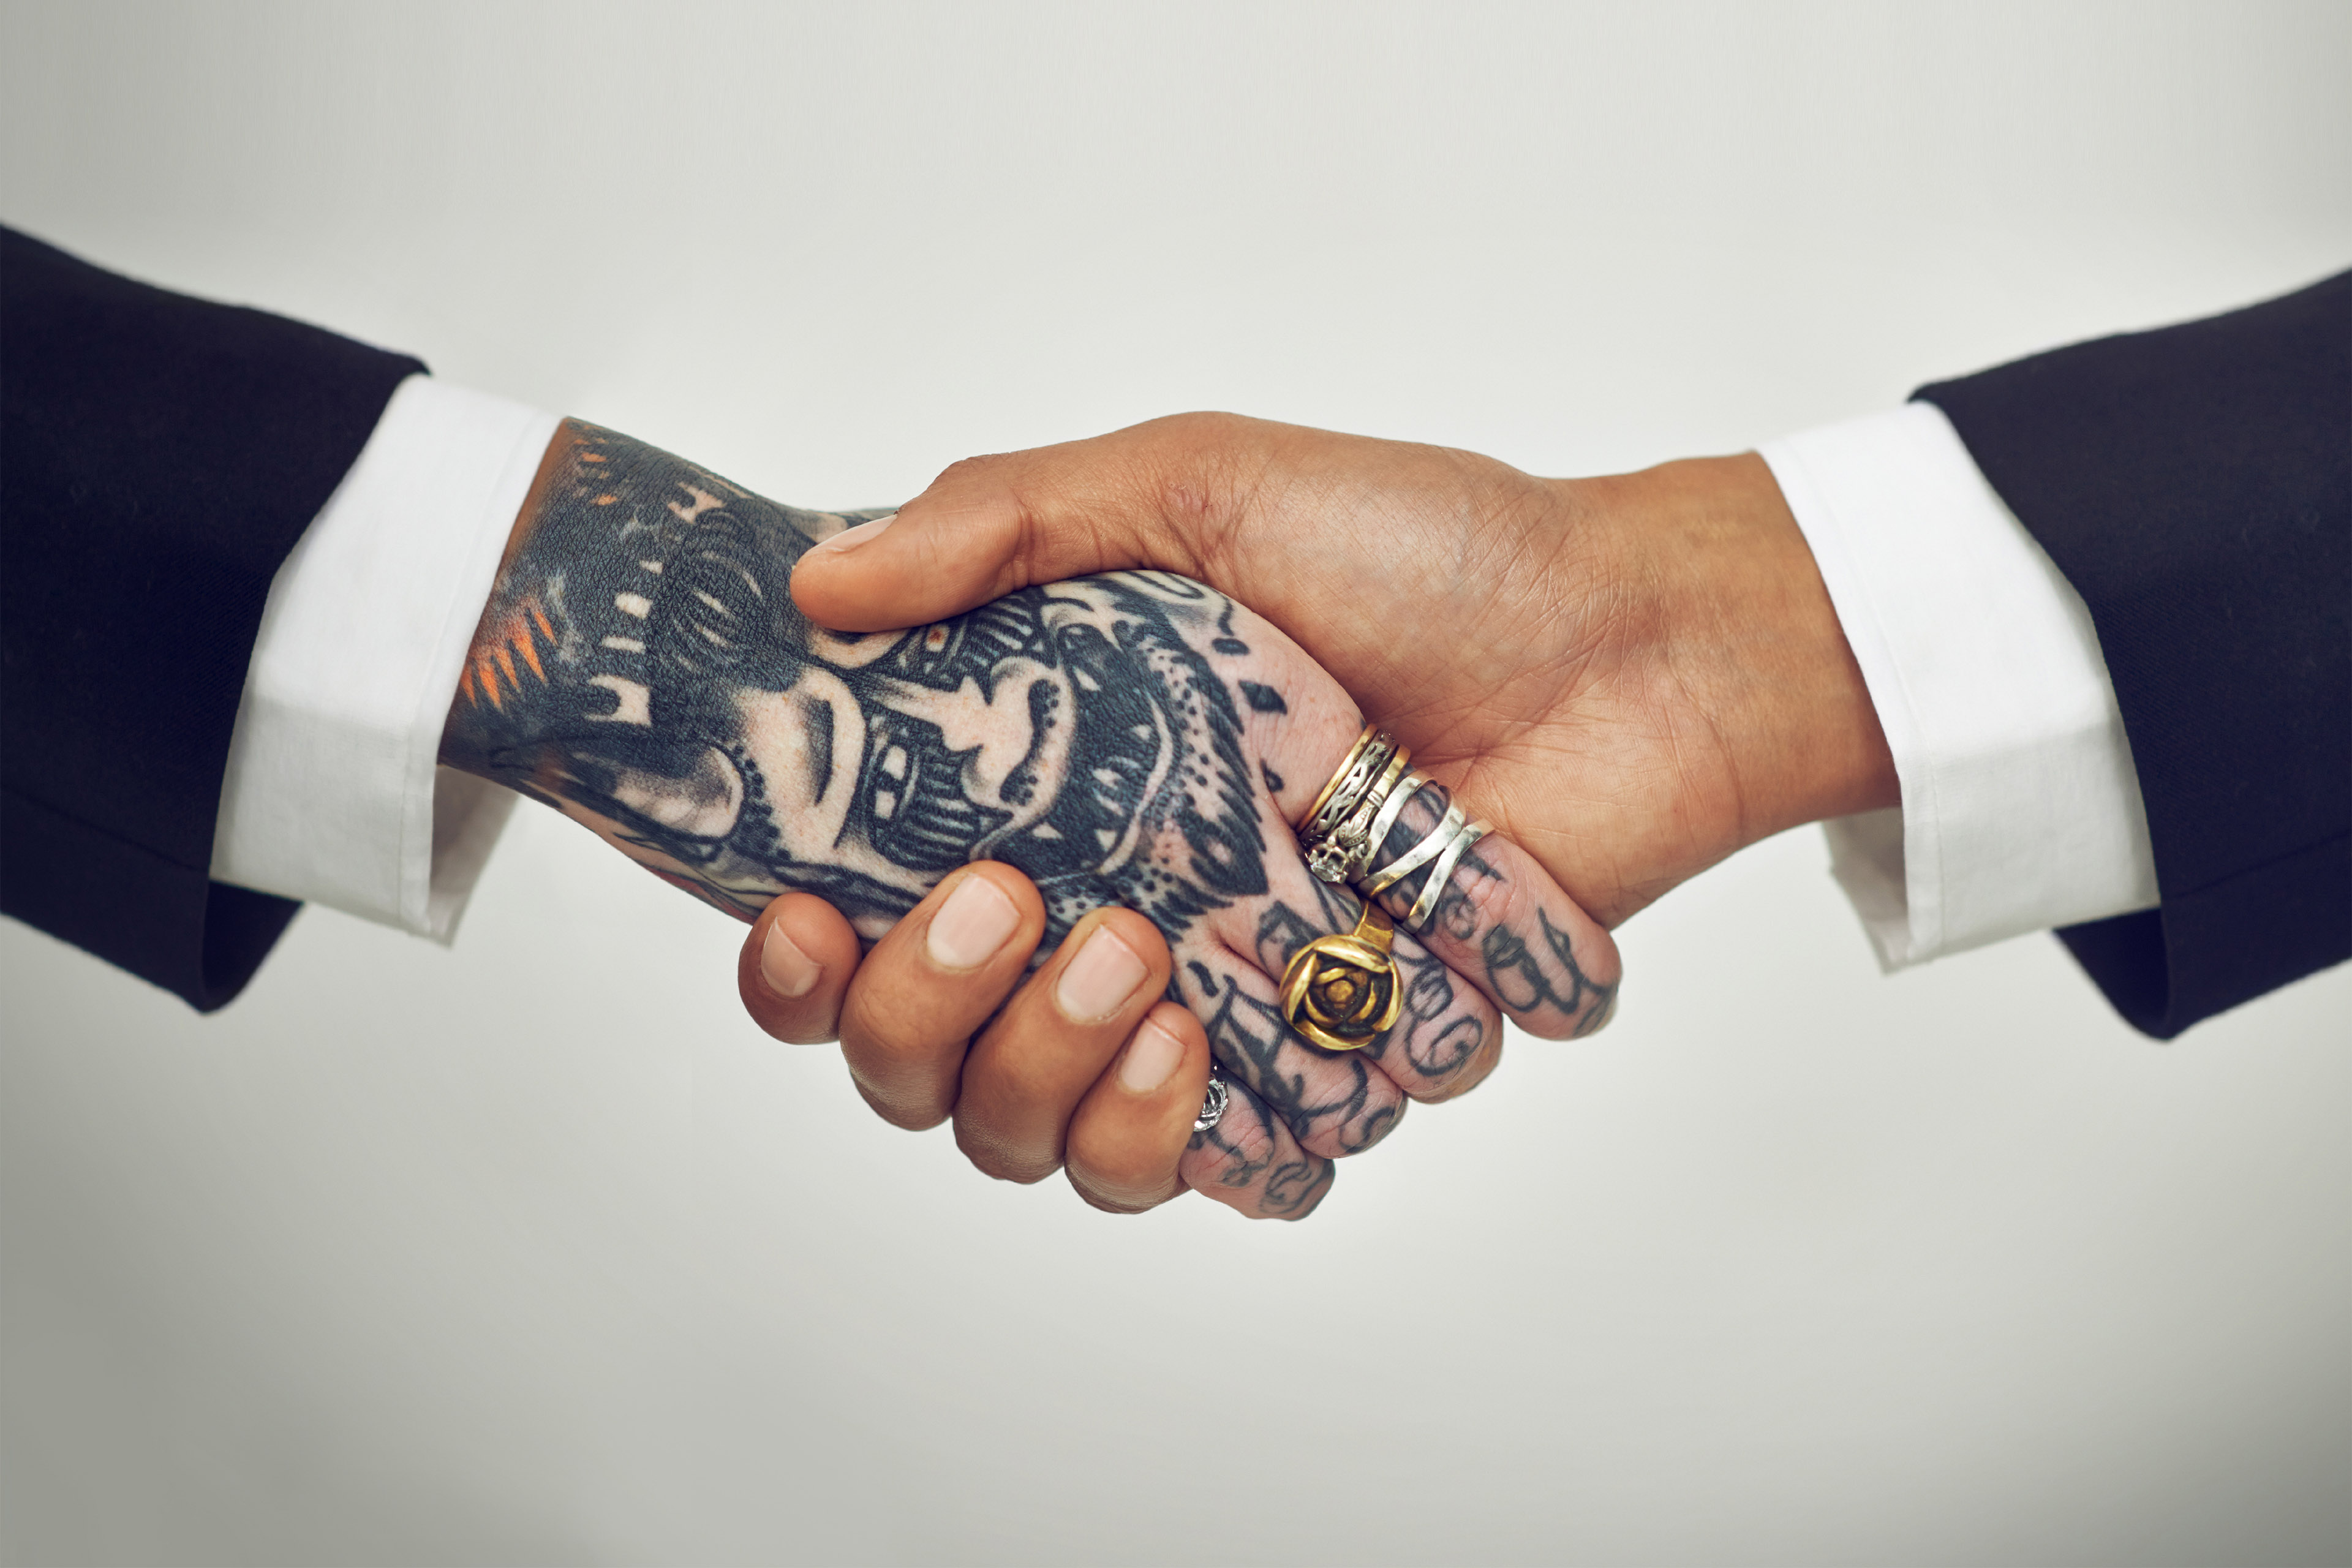 Handshake between a tattooed hand and unmarked hand